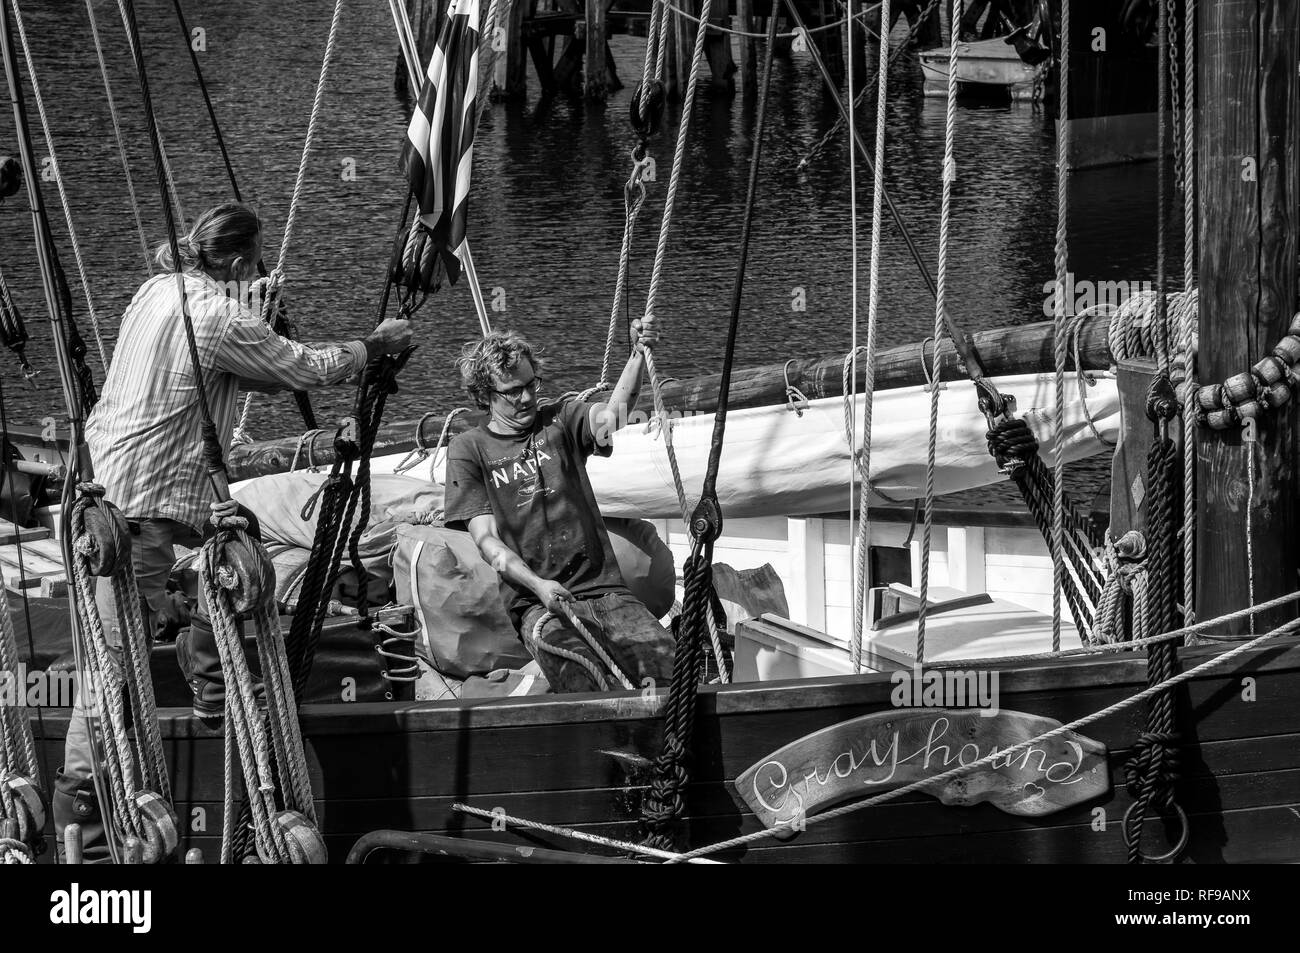 Sailors hauling on a rope in a traditional old sailing fishing boat, Douarnenez - Stock Image